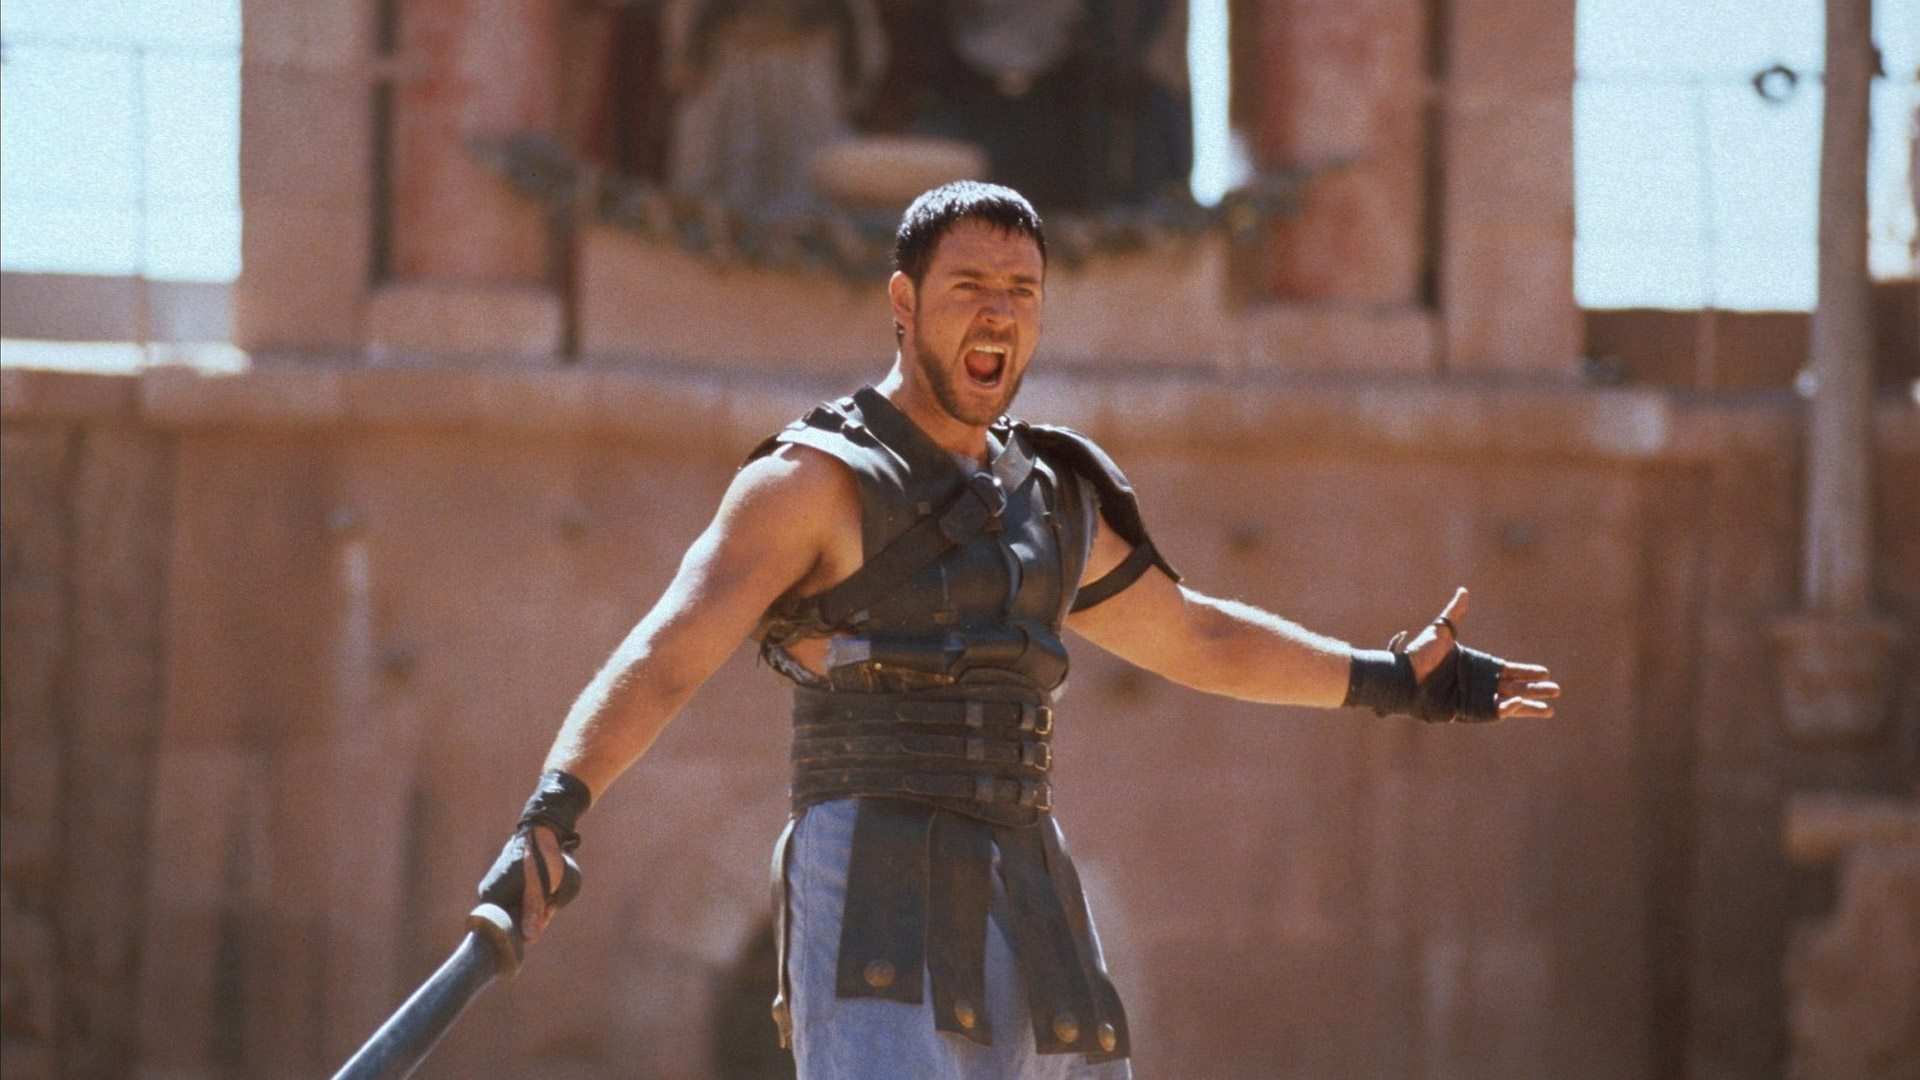 29 Entertaining Facts About Gladiator HD Wallpapers Download free images and photos [musssic.tk]